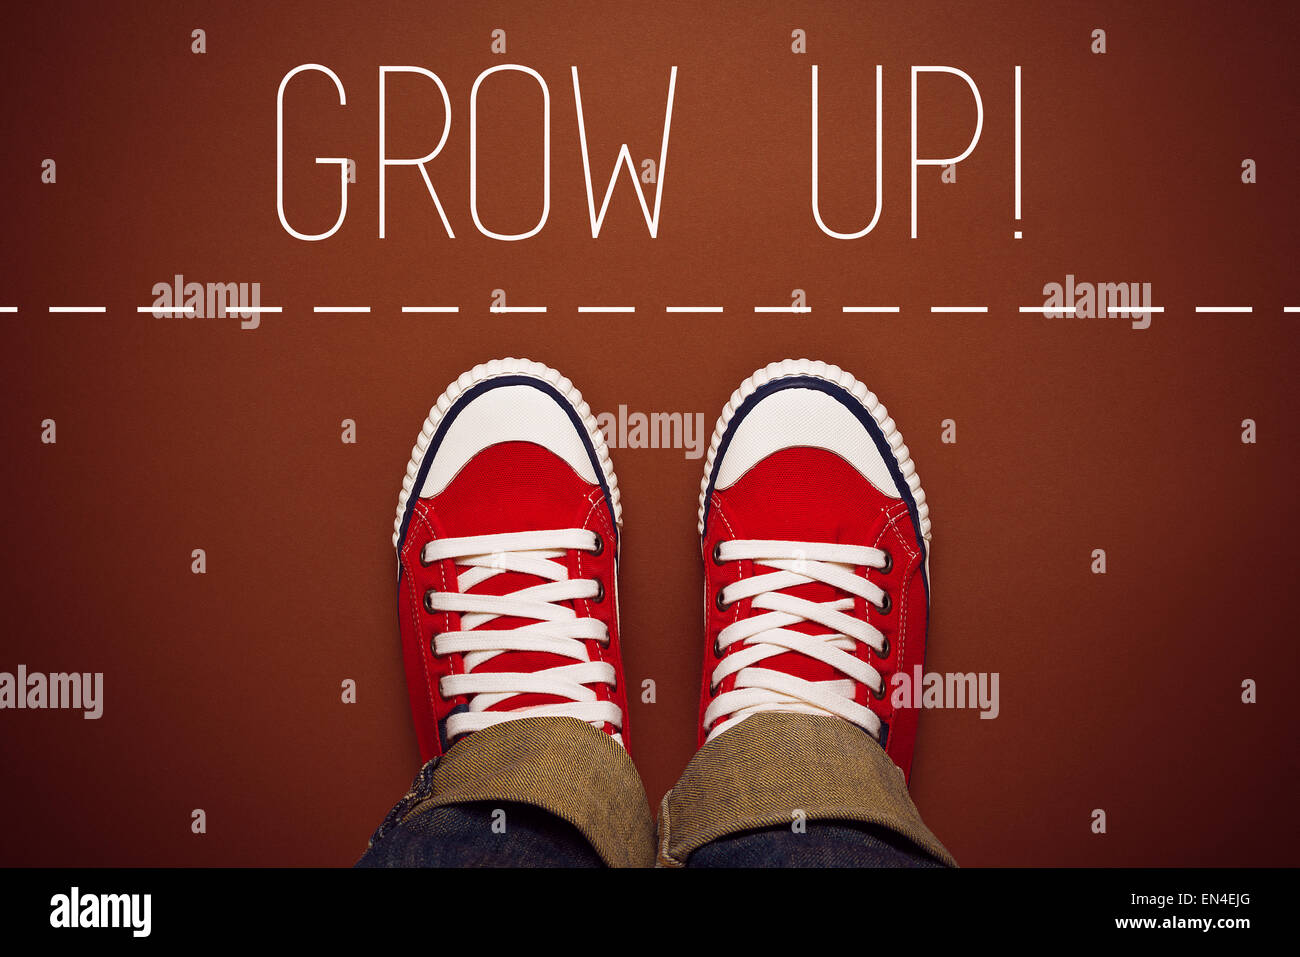 Grow Up Reminder for Young Person in Red Sneakers about to make a Step and Join the Party, Top View - Stock Image